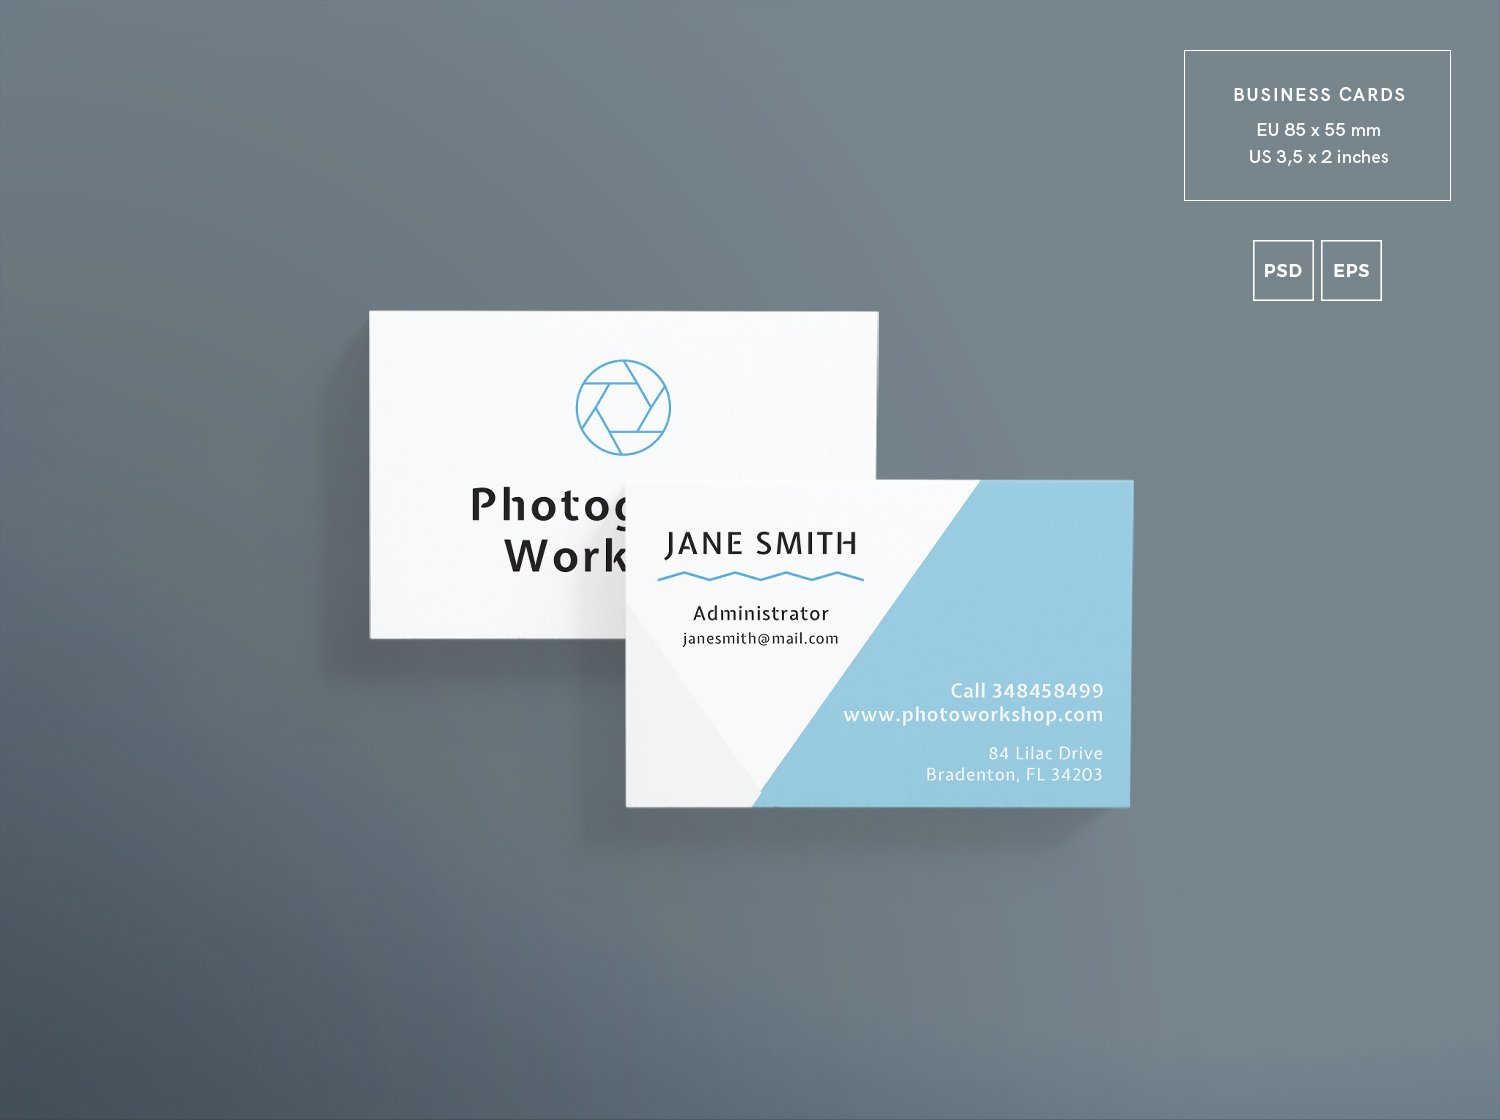 Photography Workshop Business Card Free PSD Template